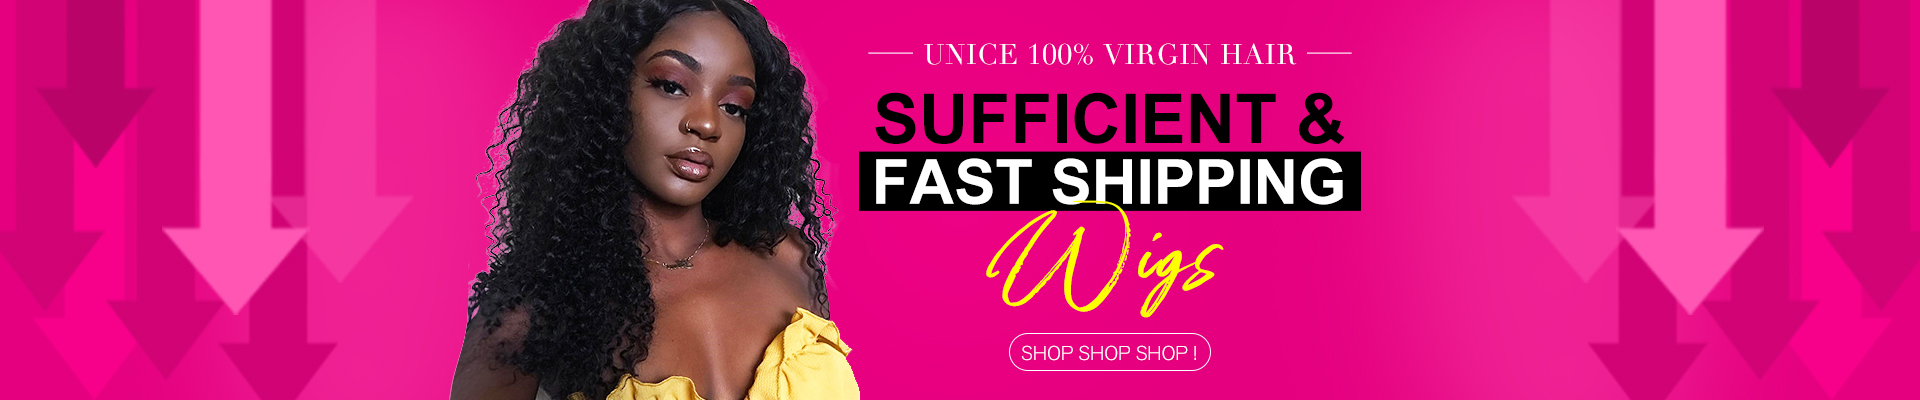 sufficient & fast shipping